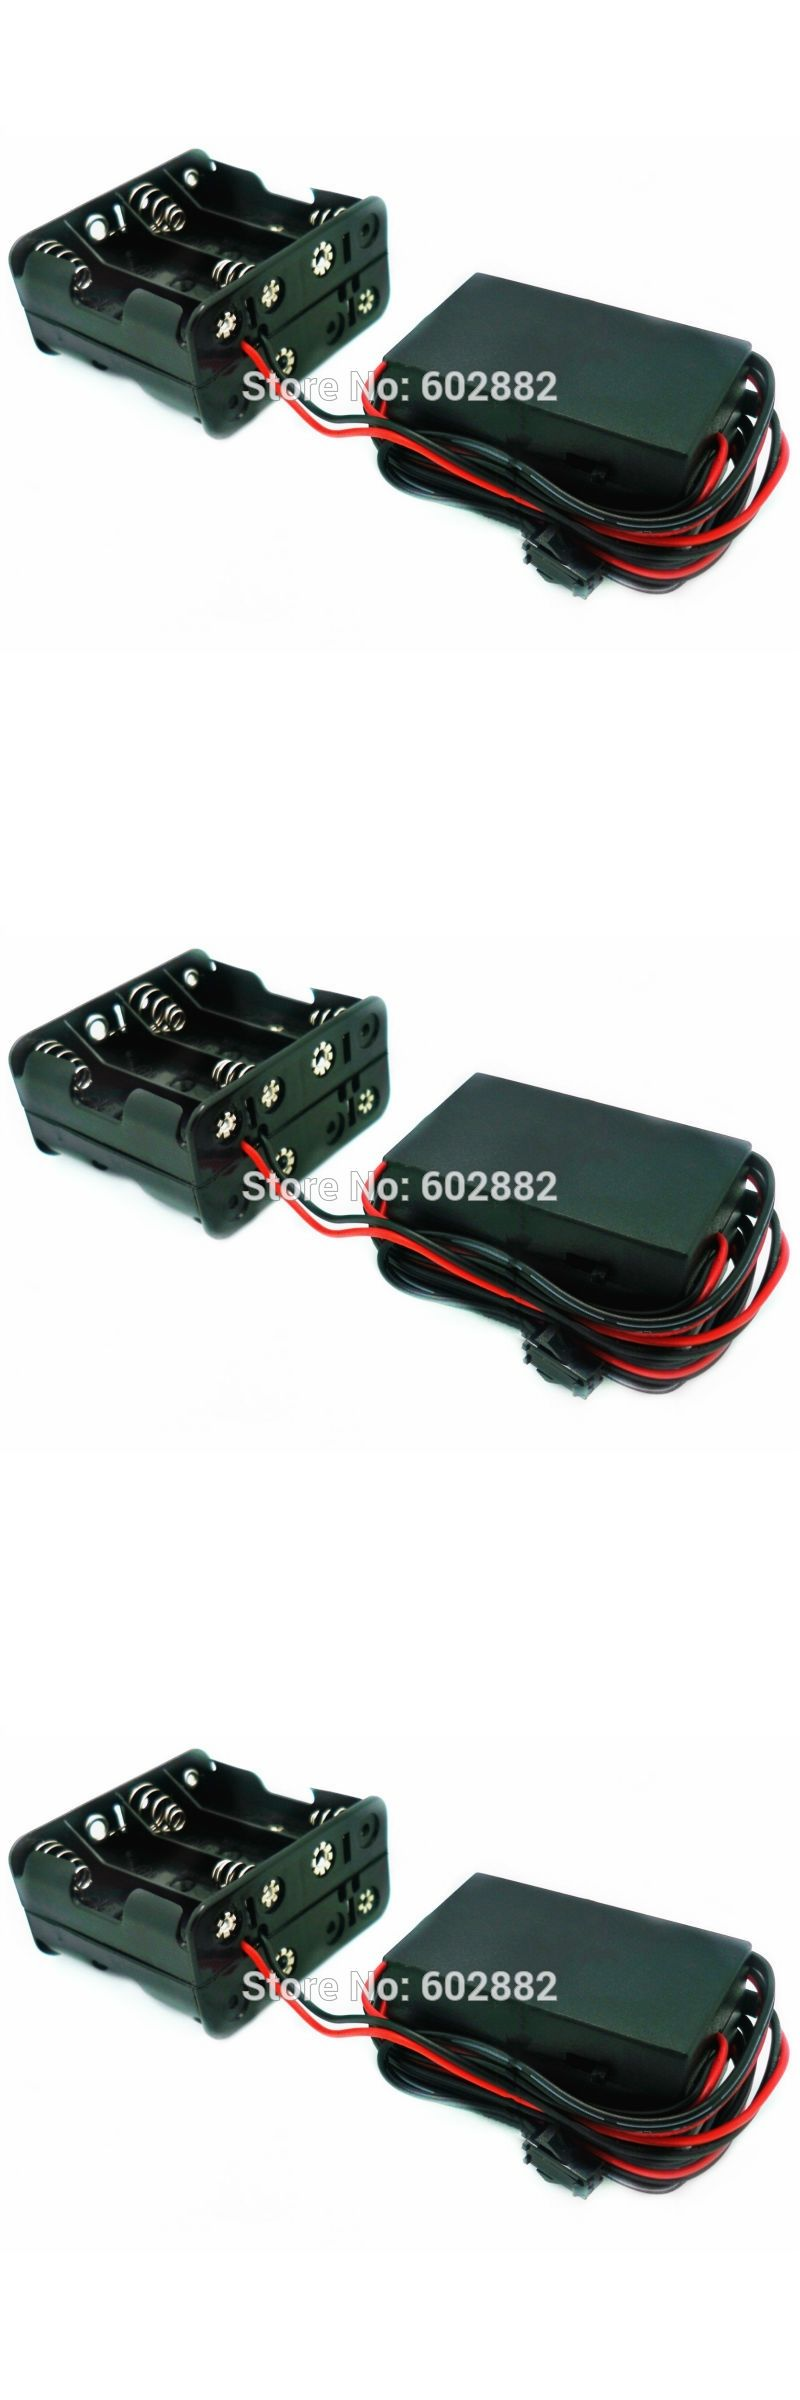 12V Inverter for 10 - 15 Meters EL Wire with Cell Box   Electrical ...